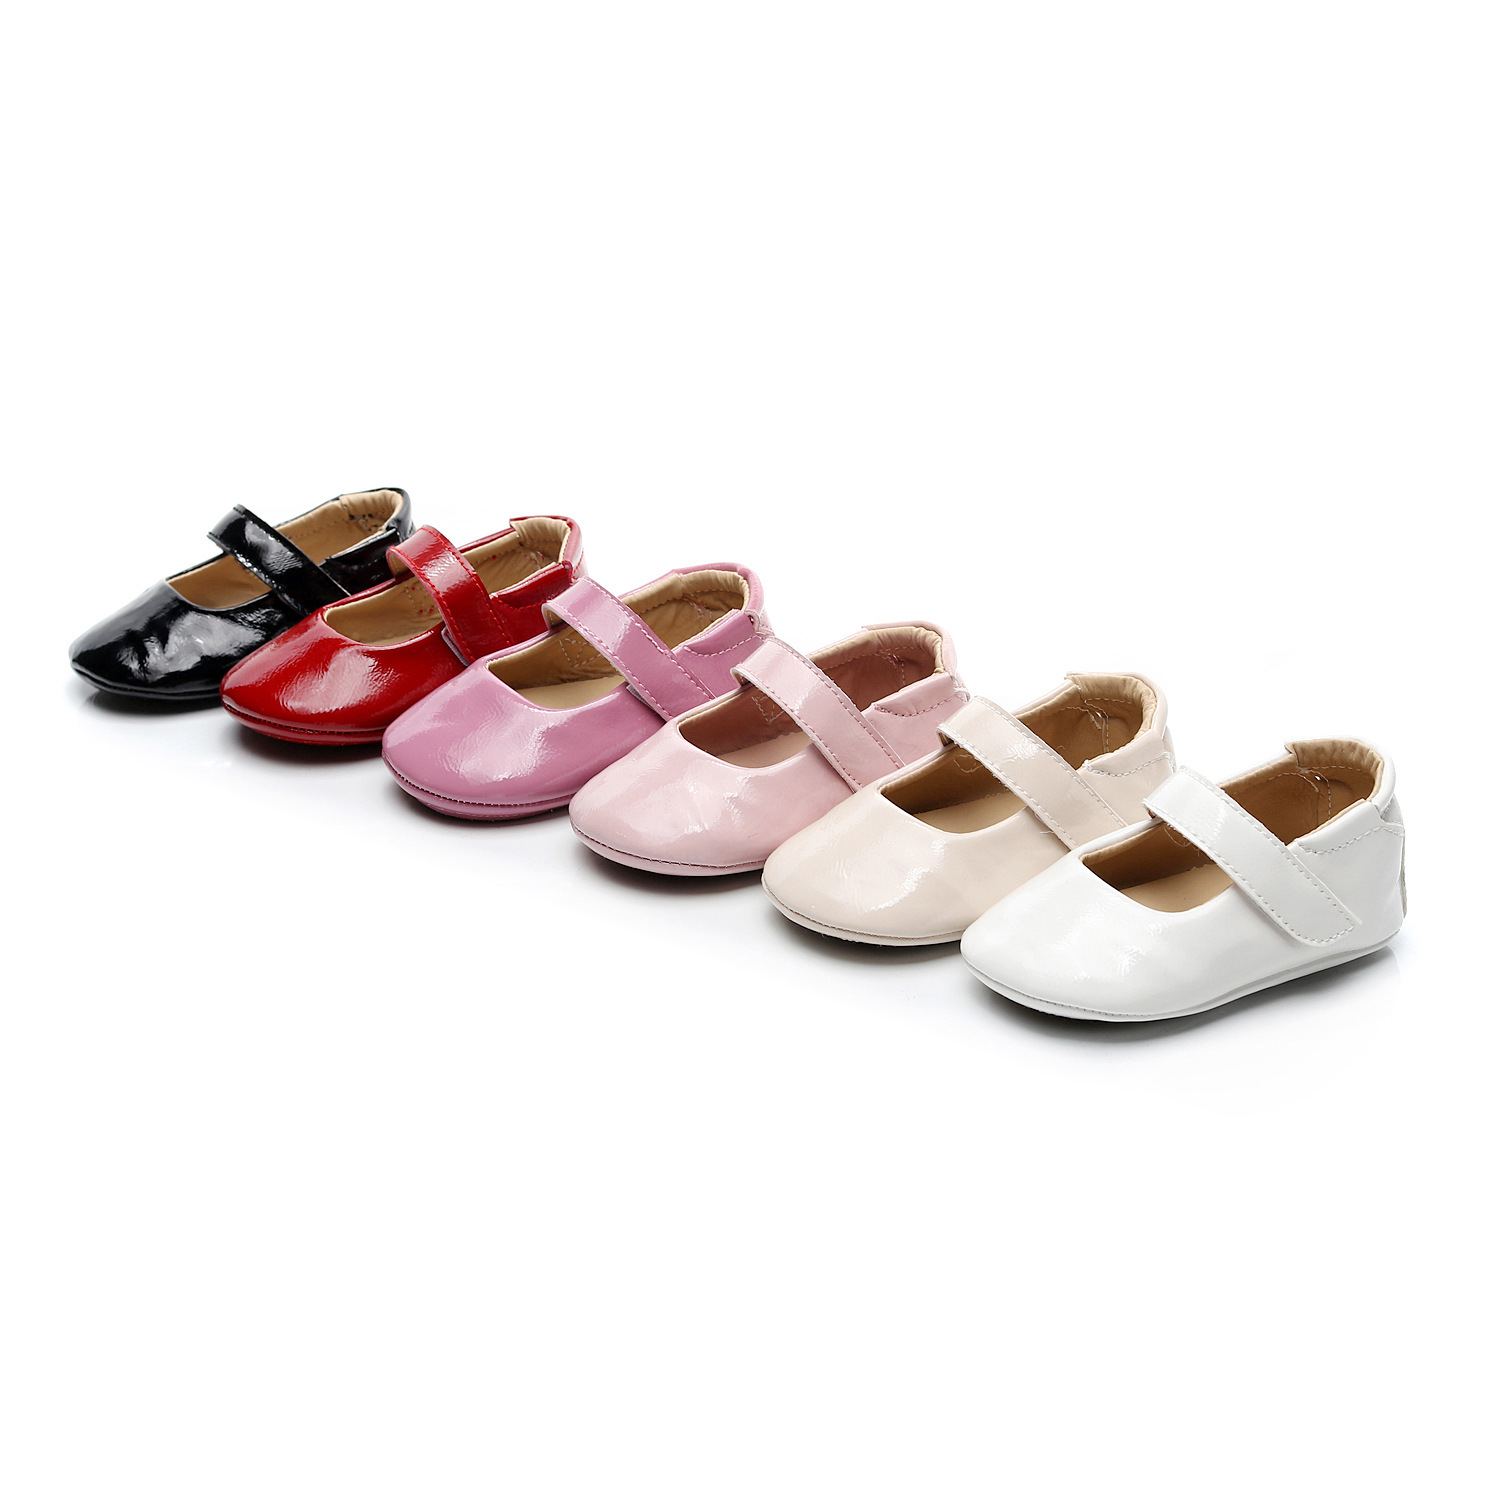 Spring And Autumn New Pu Leather Baby Toddler Shoes Baby Shoes Rubber Bottom 0-1-2 Years Old Infant Shoes